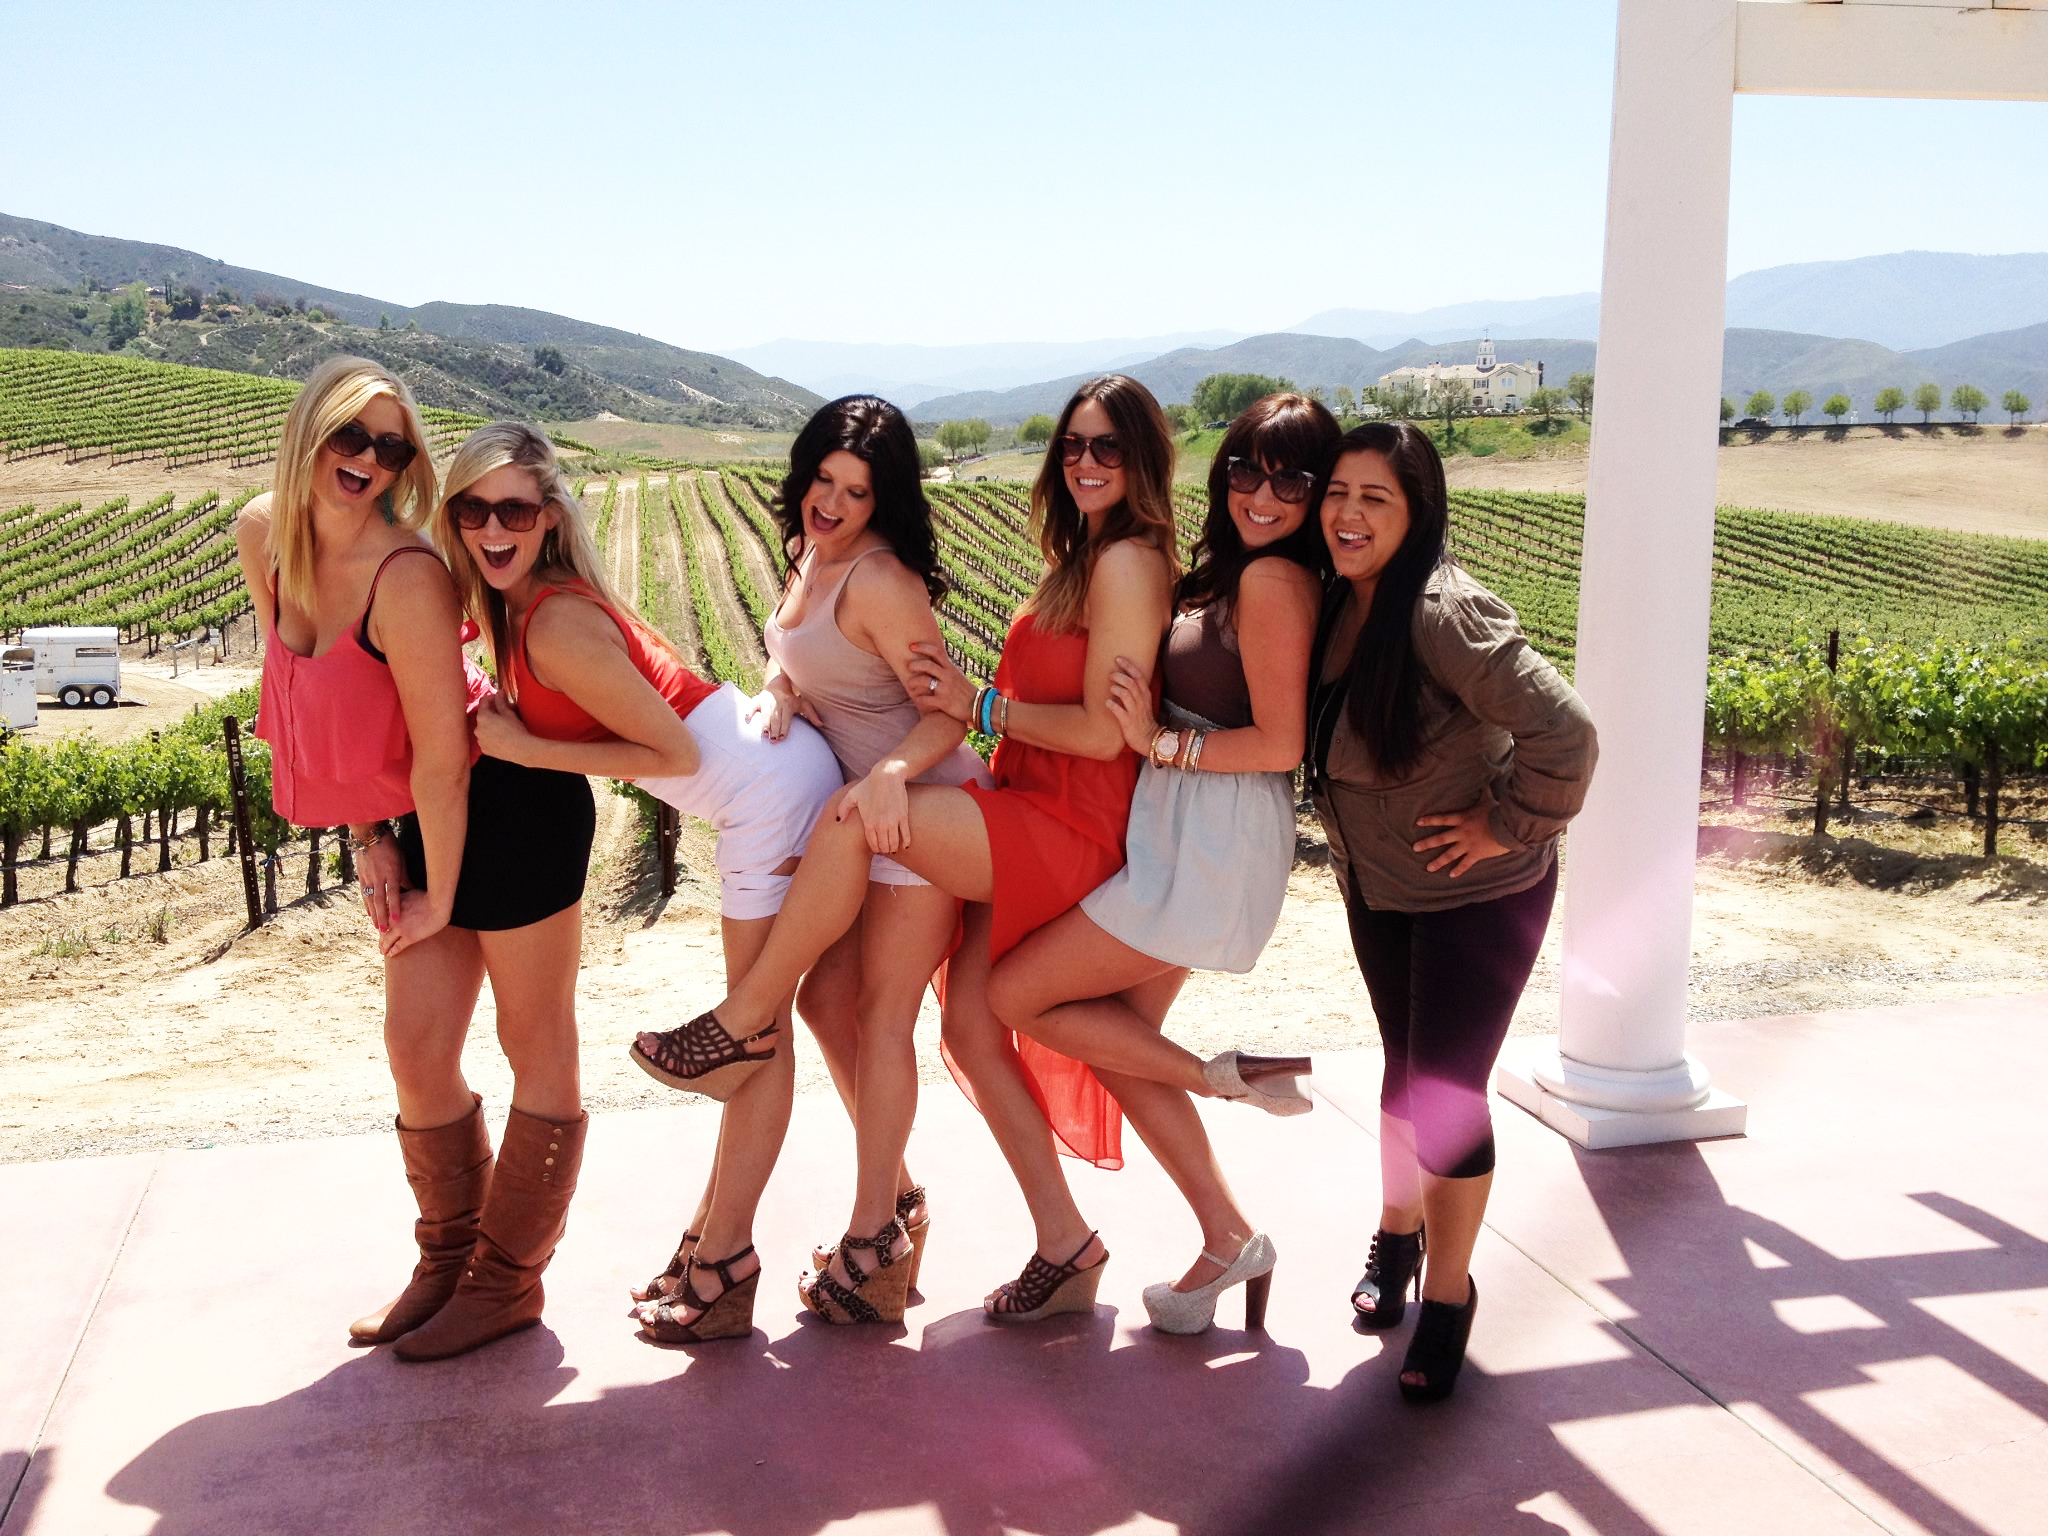 Temecula wine tour photo gallery for Bachelorette party places to go